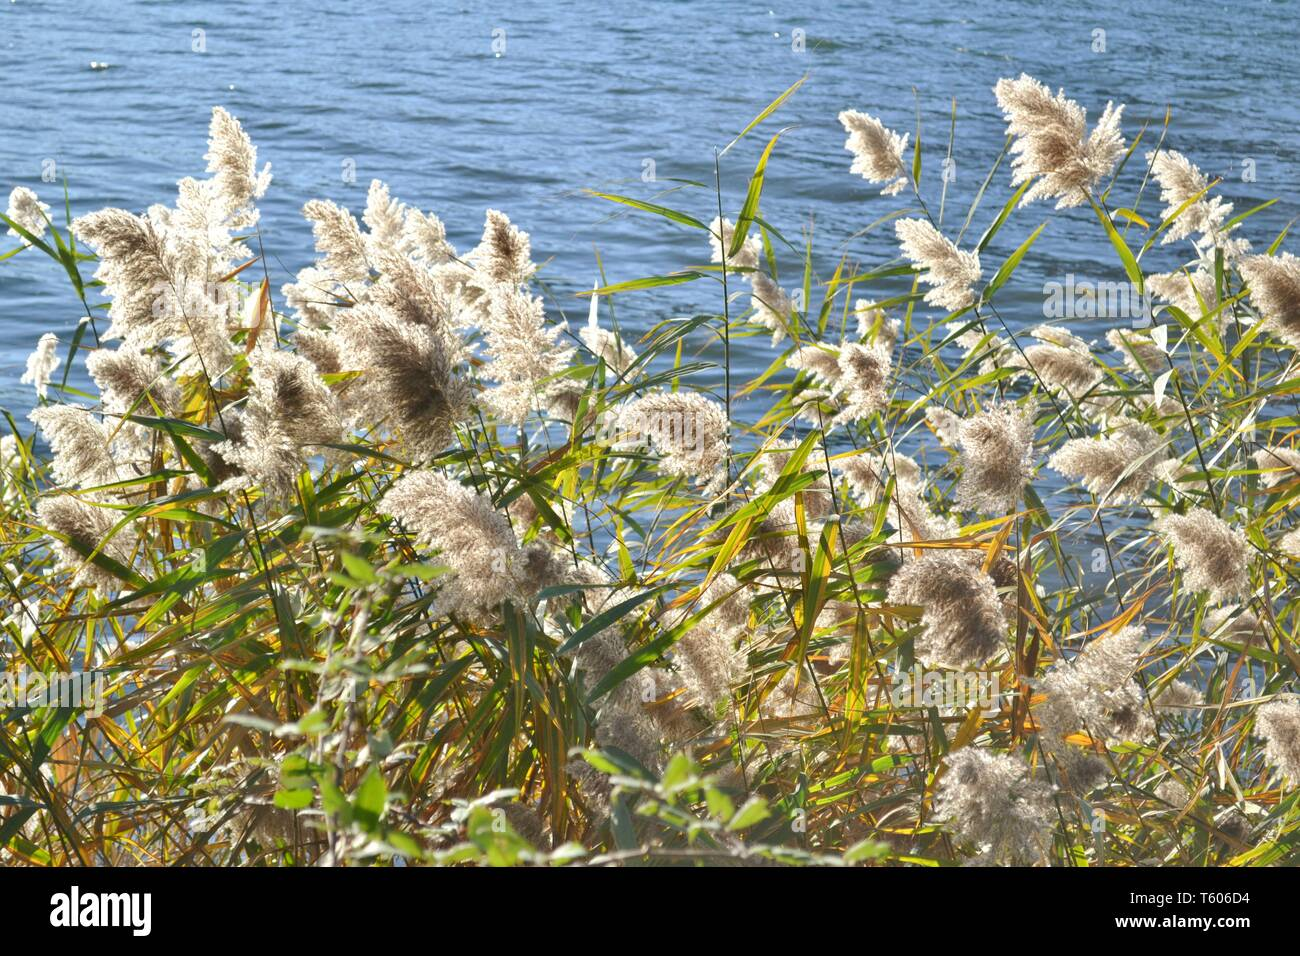 Close-up view to beautiful common reed plants bush at lakefront  brightly illuminated with sunlight in backlit and on blue rippled water background. - Stock Image